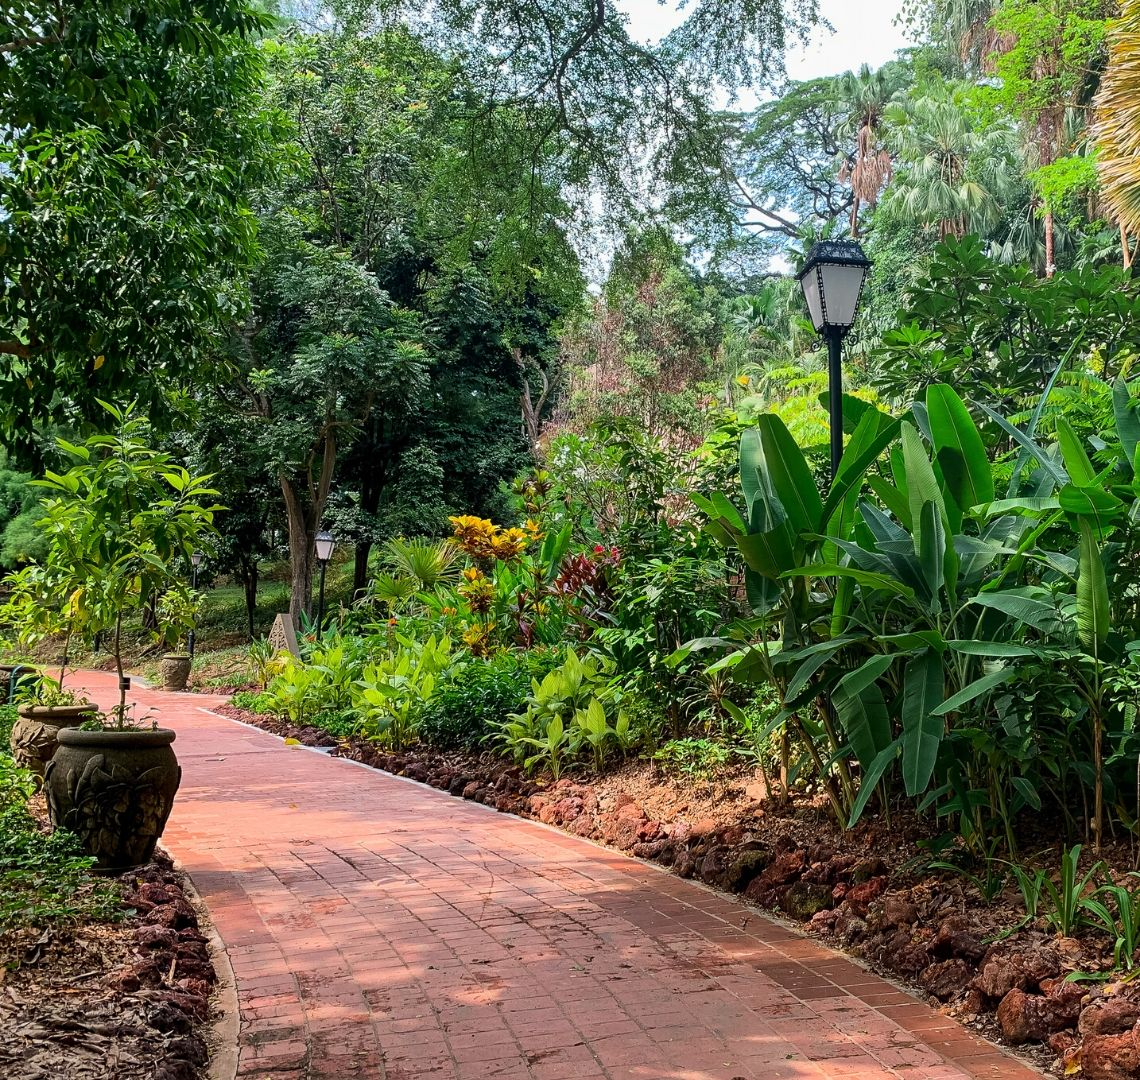 Things To Do In Fort Canning With Kids - a brick path curves from the middle round to teh left. On the right there are some green plants and flowers and a lamppost in the middle of the flower bed. On the right there are 2 plant pots with small trees in them.